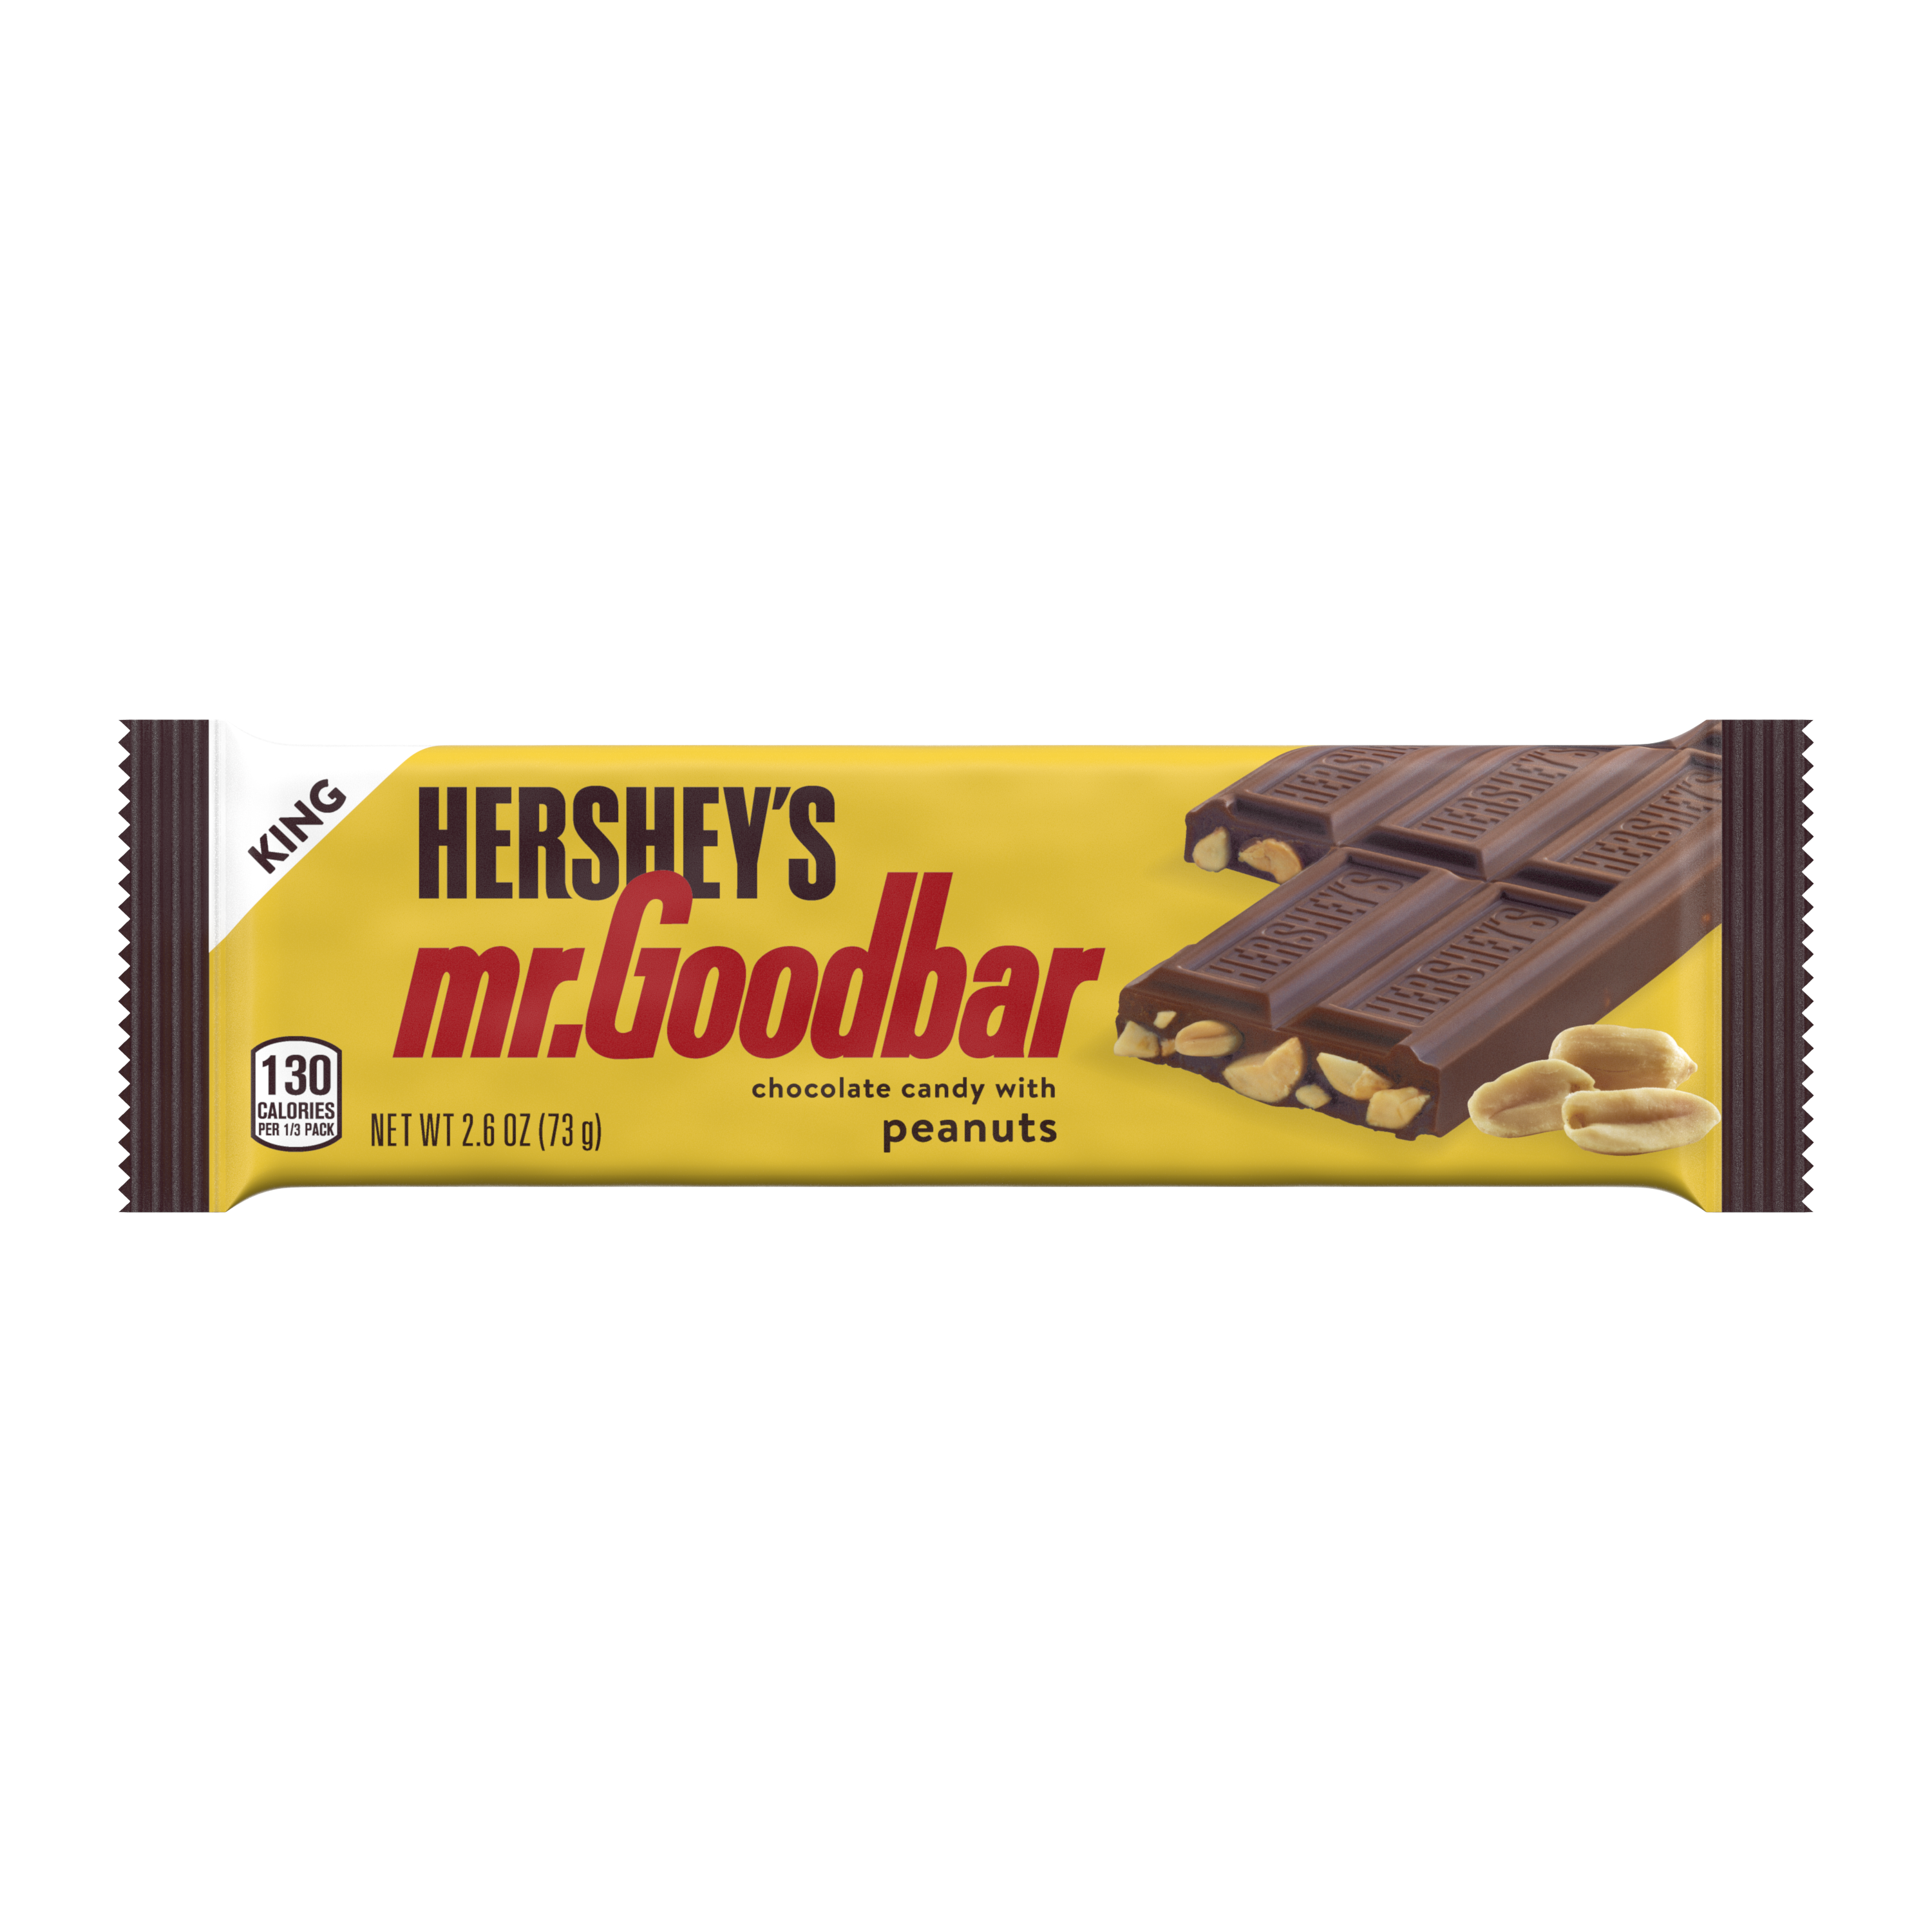 HERSHEY'S MR. GOODBAR Milk Chocolate with Peanuts King Size Candy Bar, 2.6 oz - Front of Package